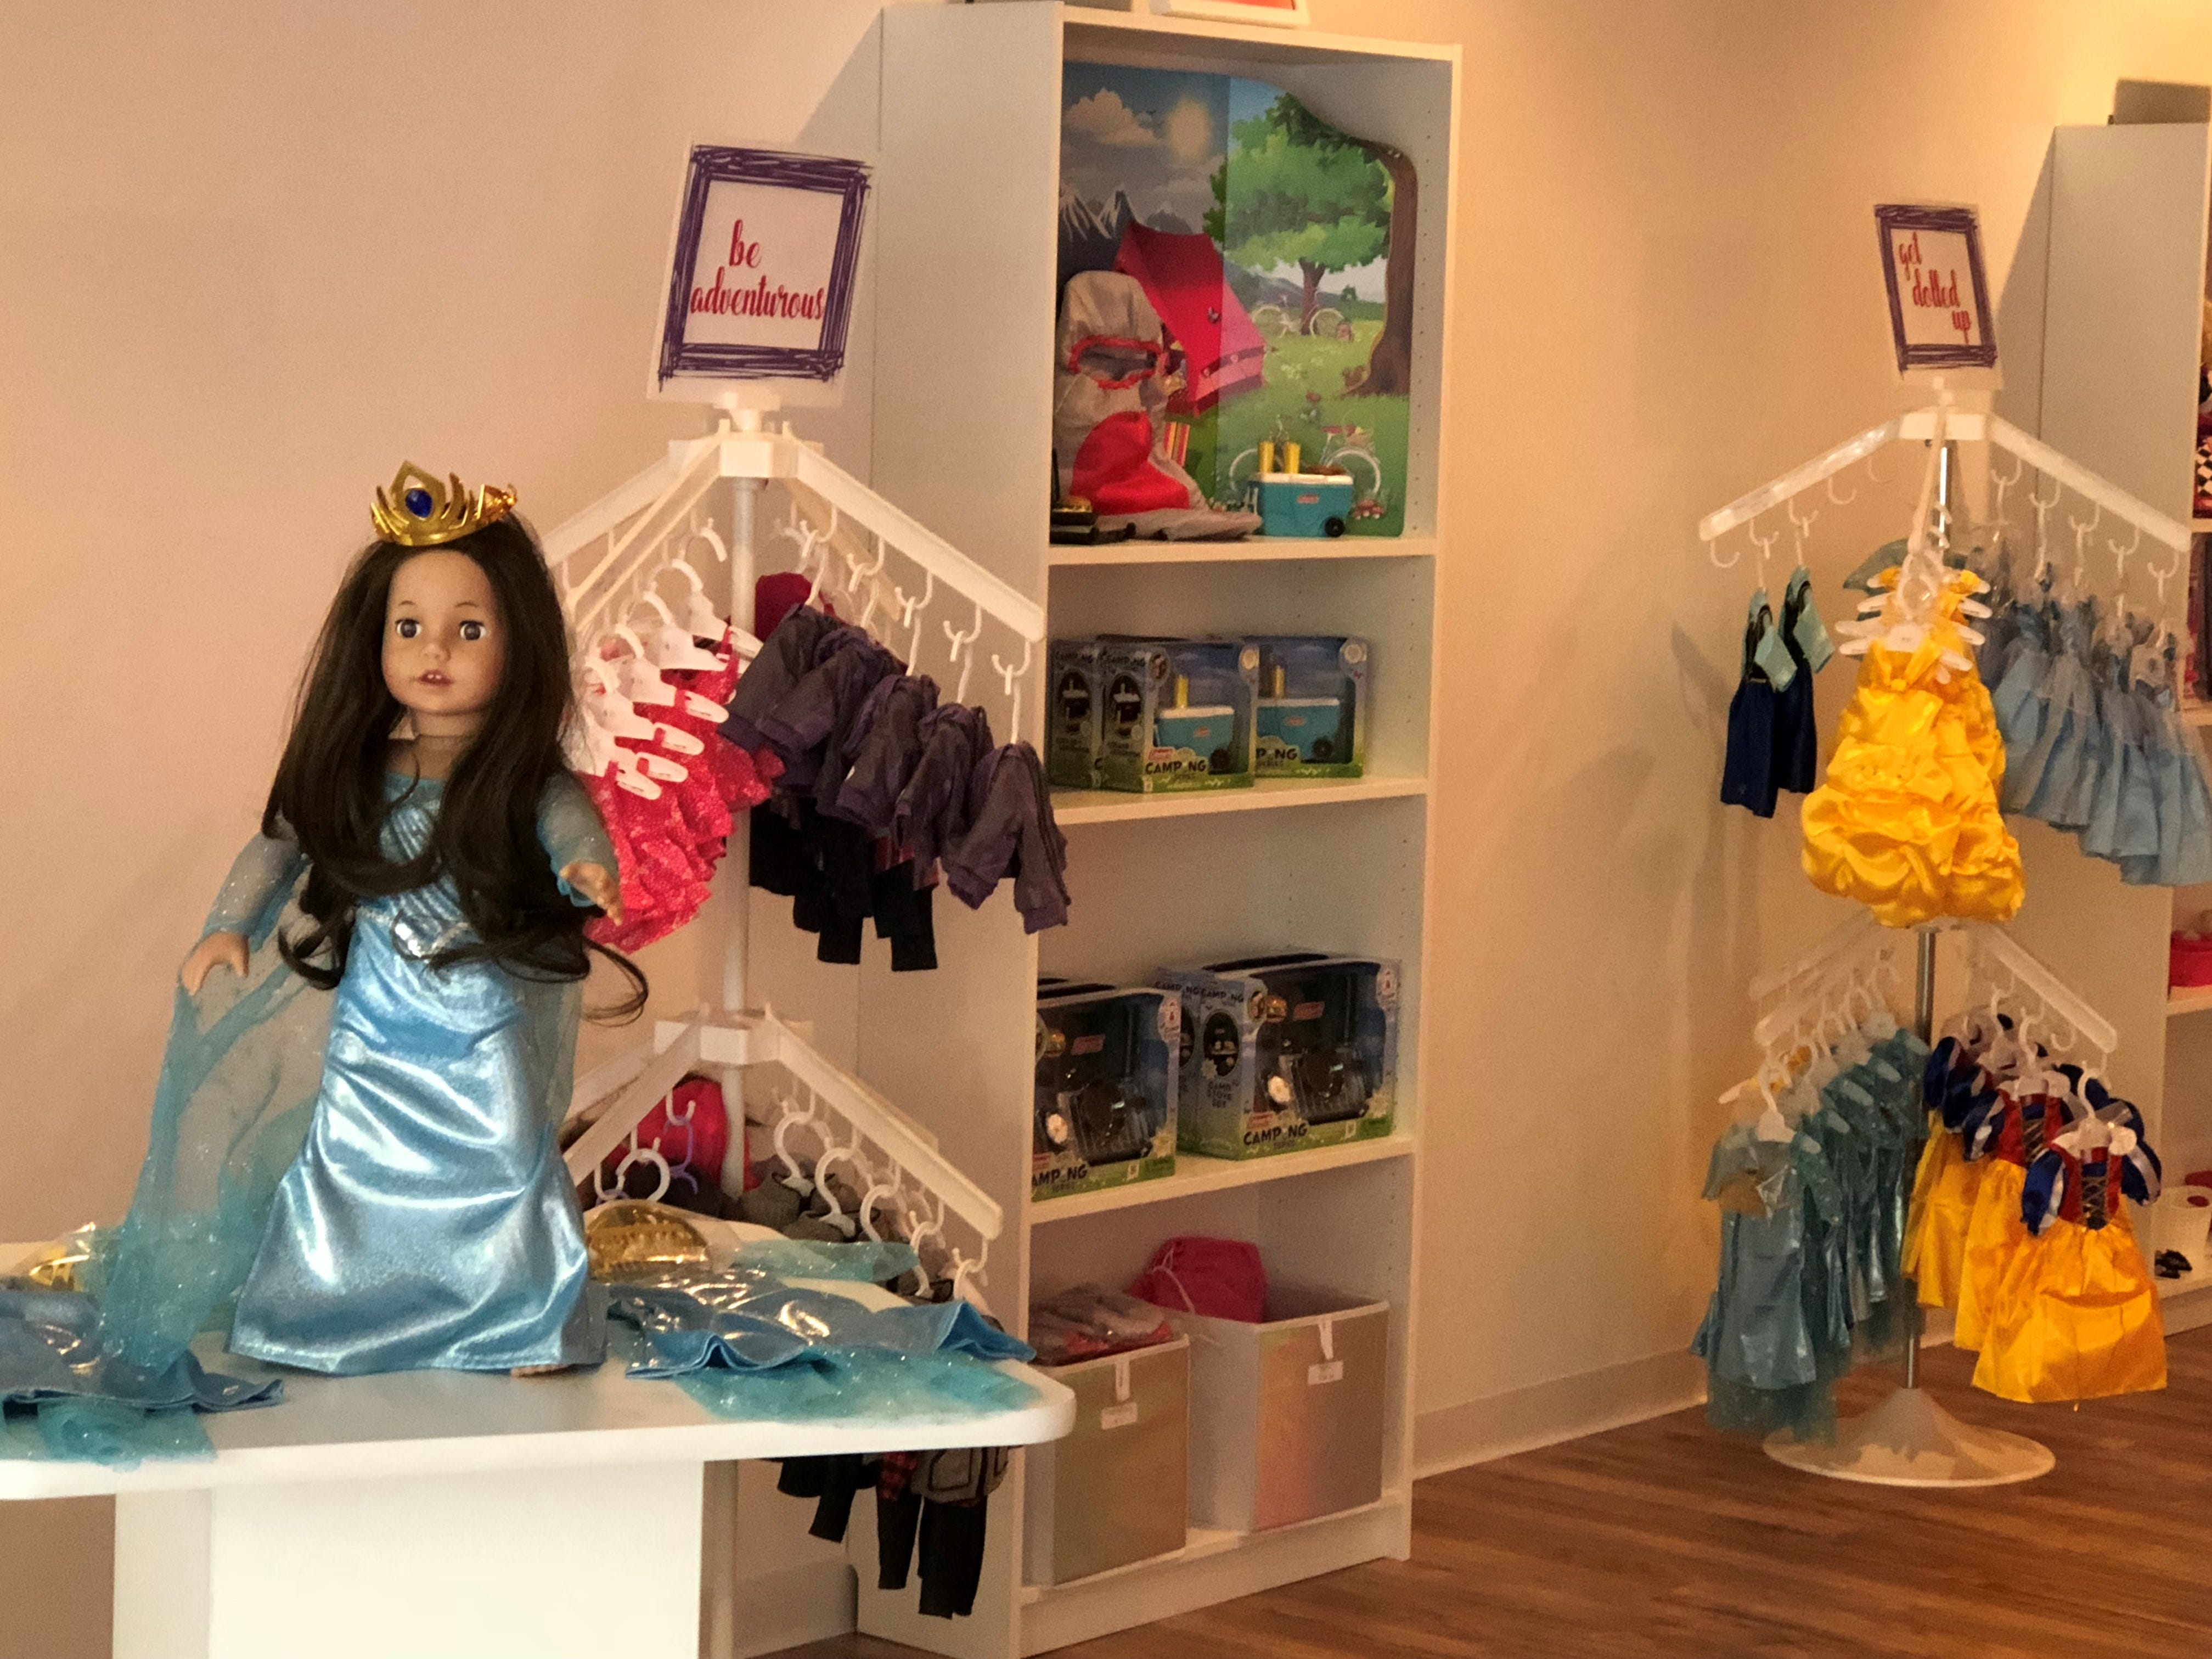 Dolls, clothing and accessories are sold at Stella & Toni in Haddonfield. Owner Melissa Fiorentino says the store aims to offer 'a perfect doll experience.'